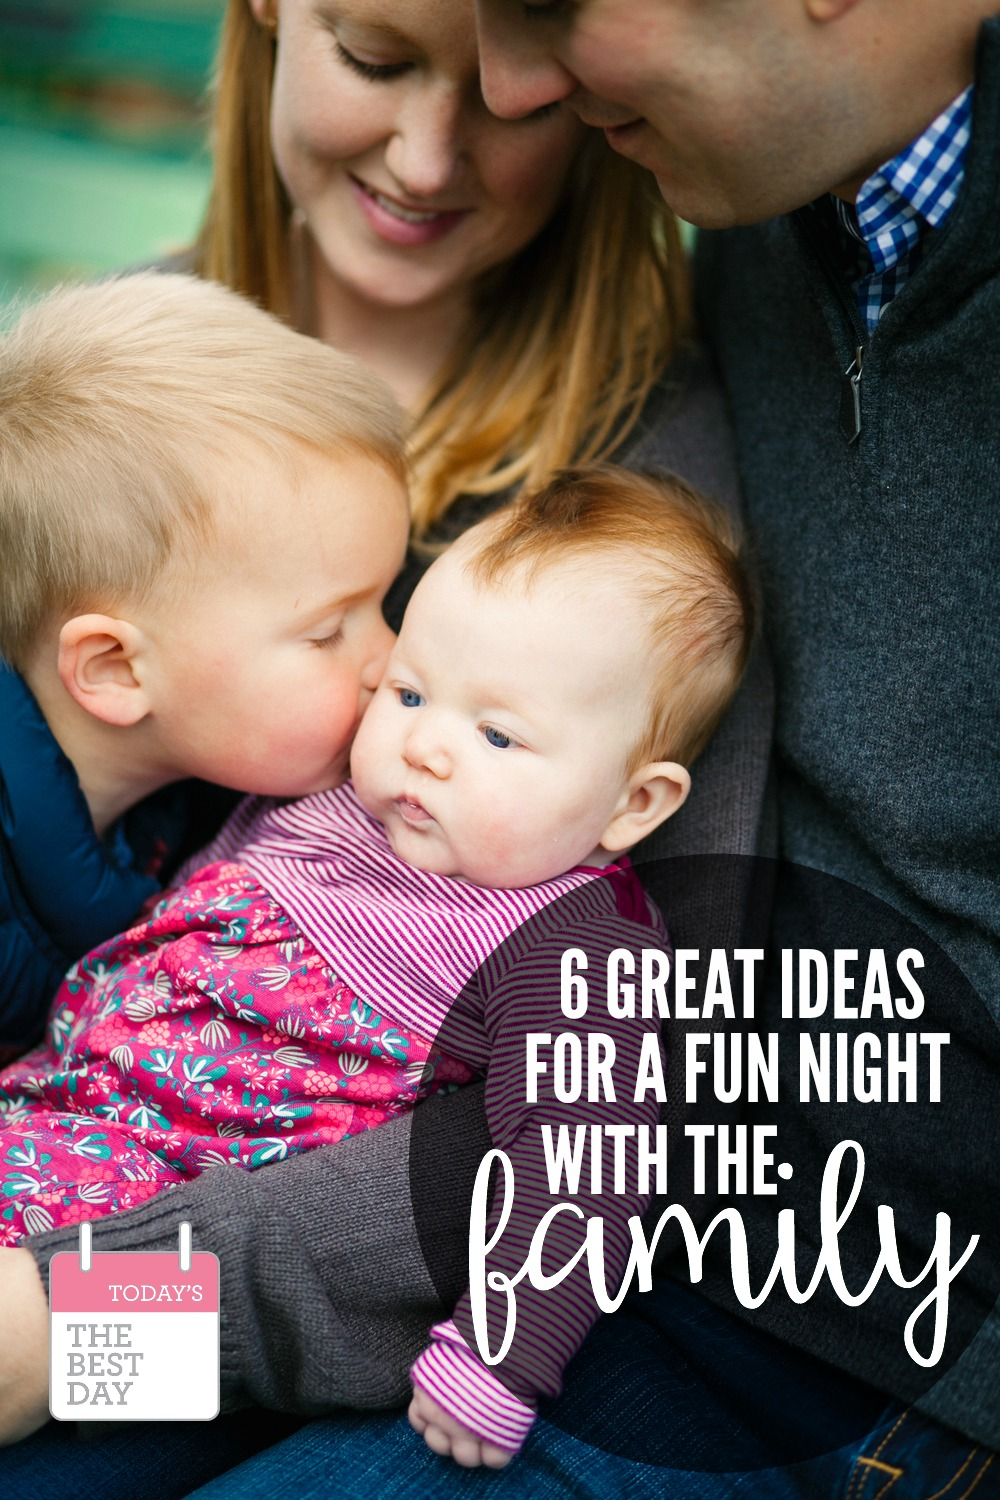 6 Great Ideas For A Fun Night With The Family